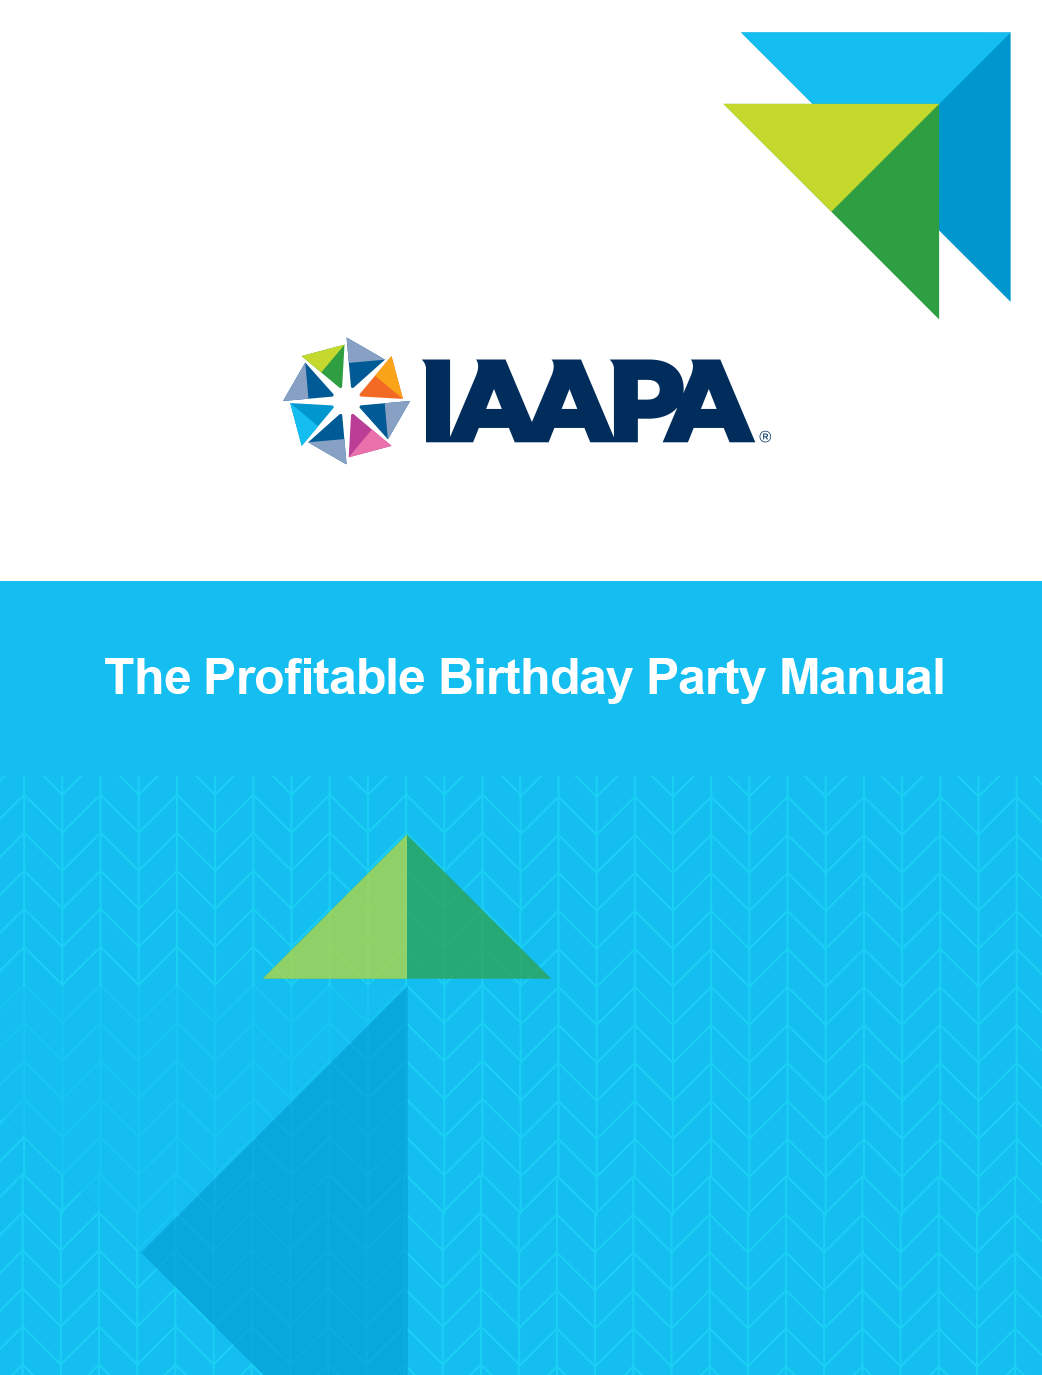 The Profitable Birthday Party Manual